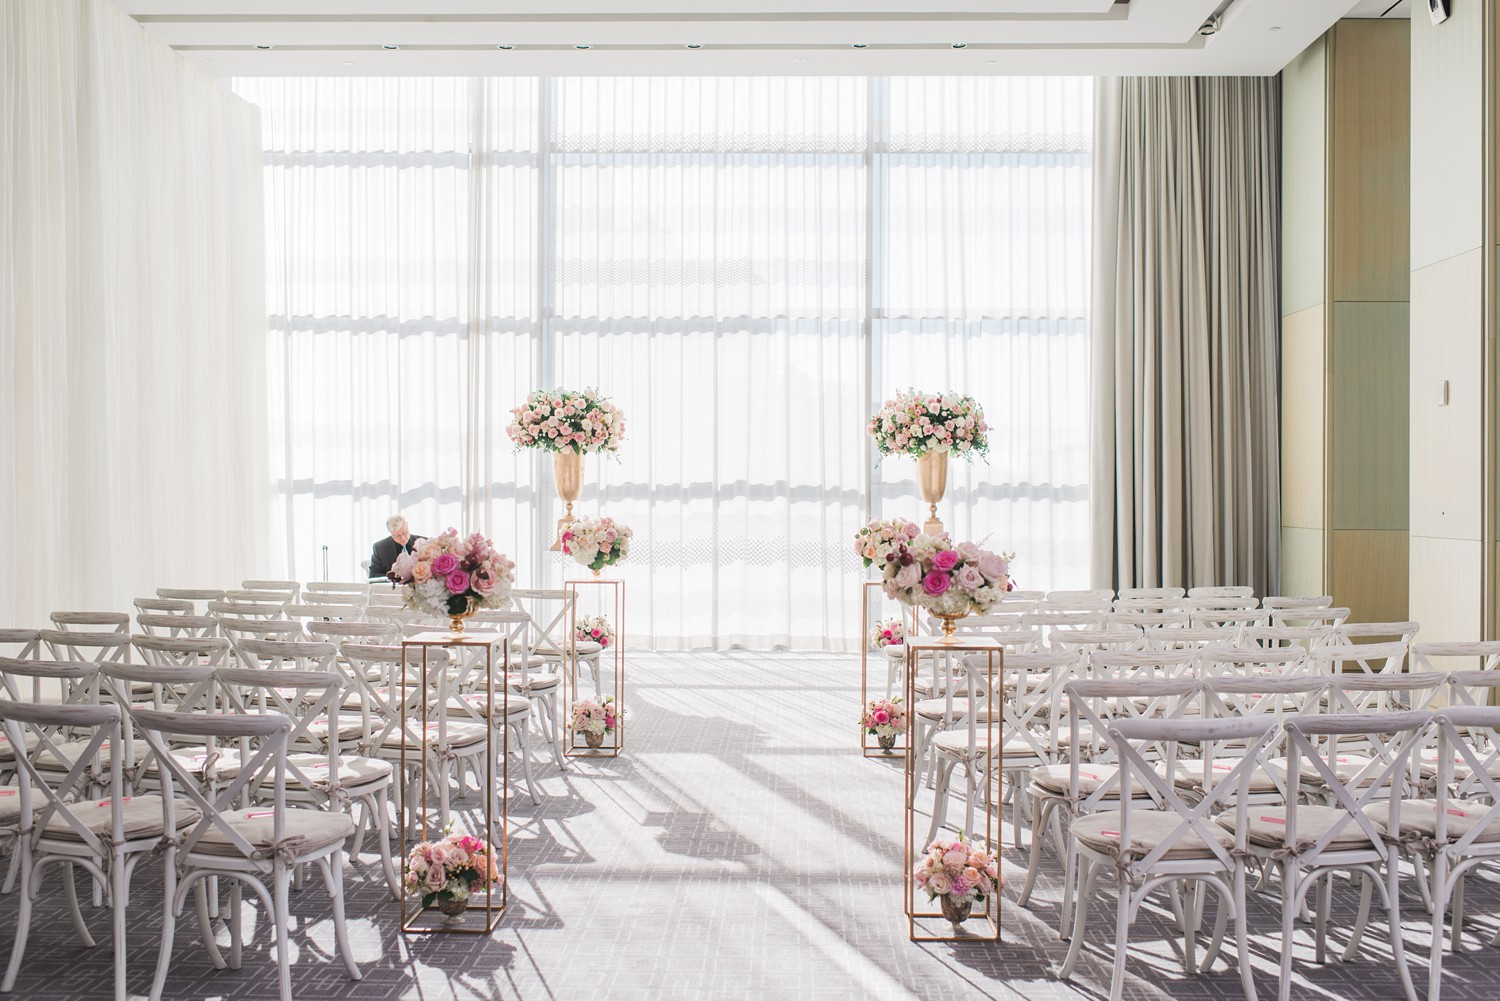 Wedding Ceremony Vinci Room Luxury Yorkville Toronto Four Season Hotel Wedding Photos with Chinese Bride and Groom